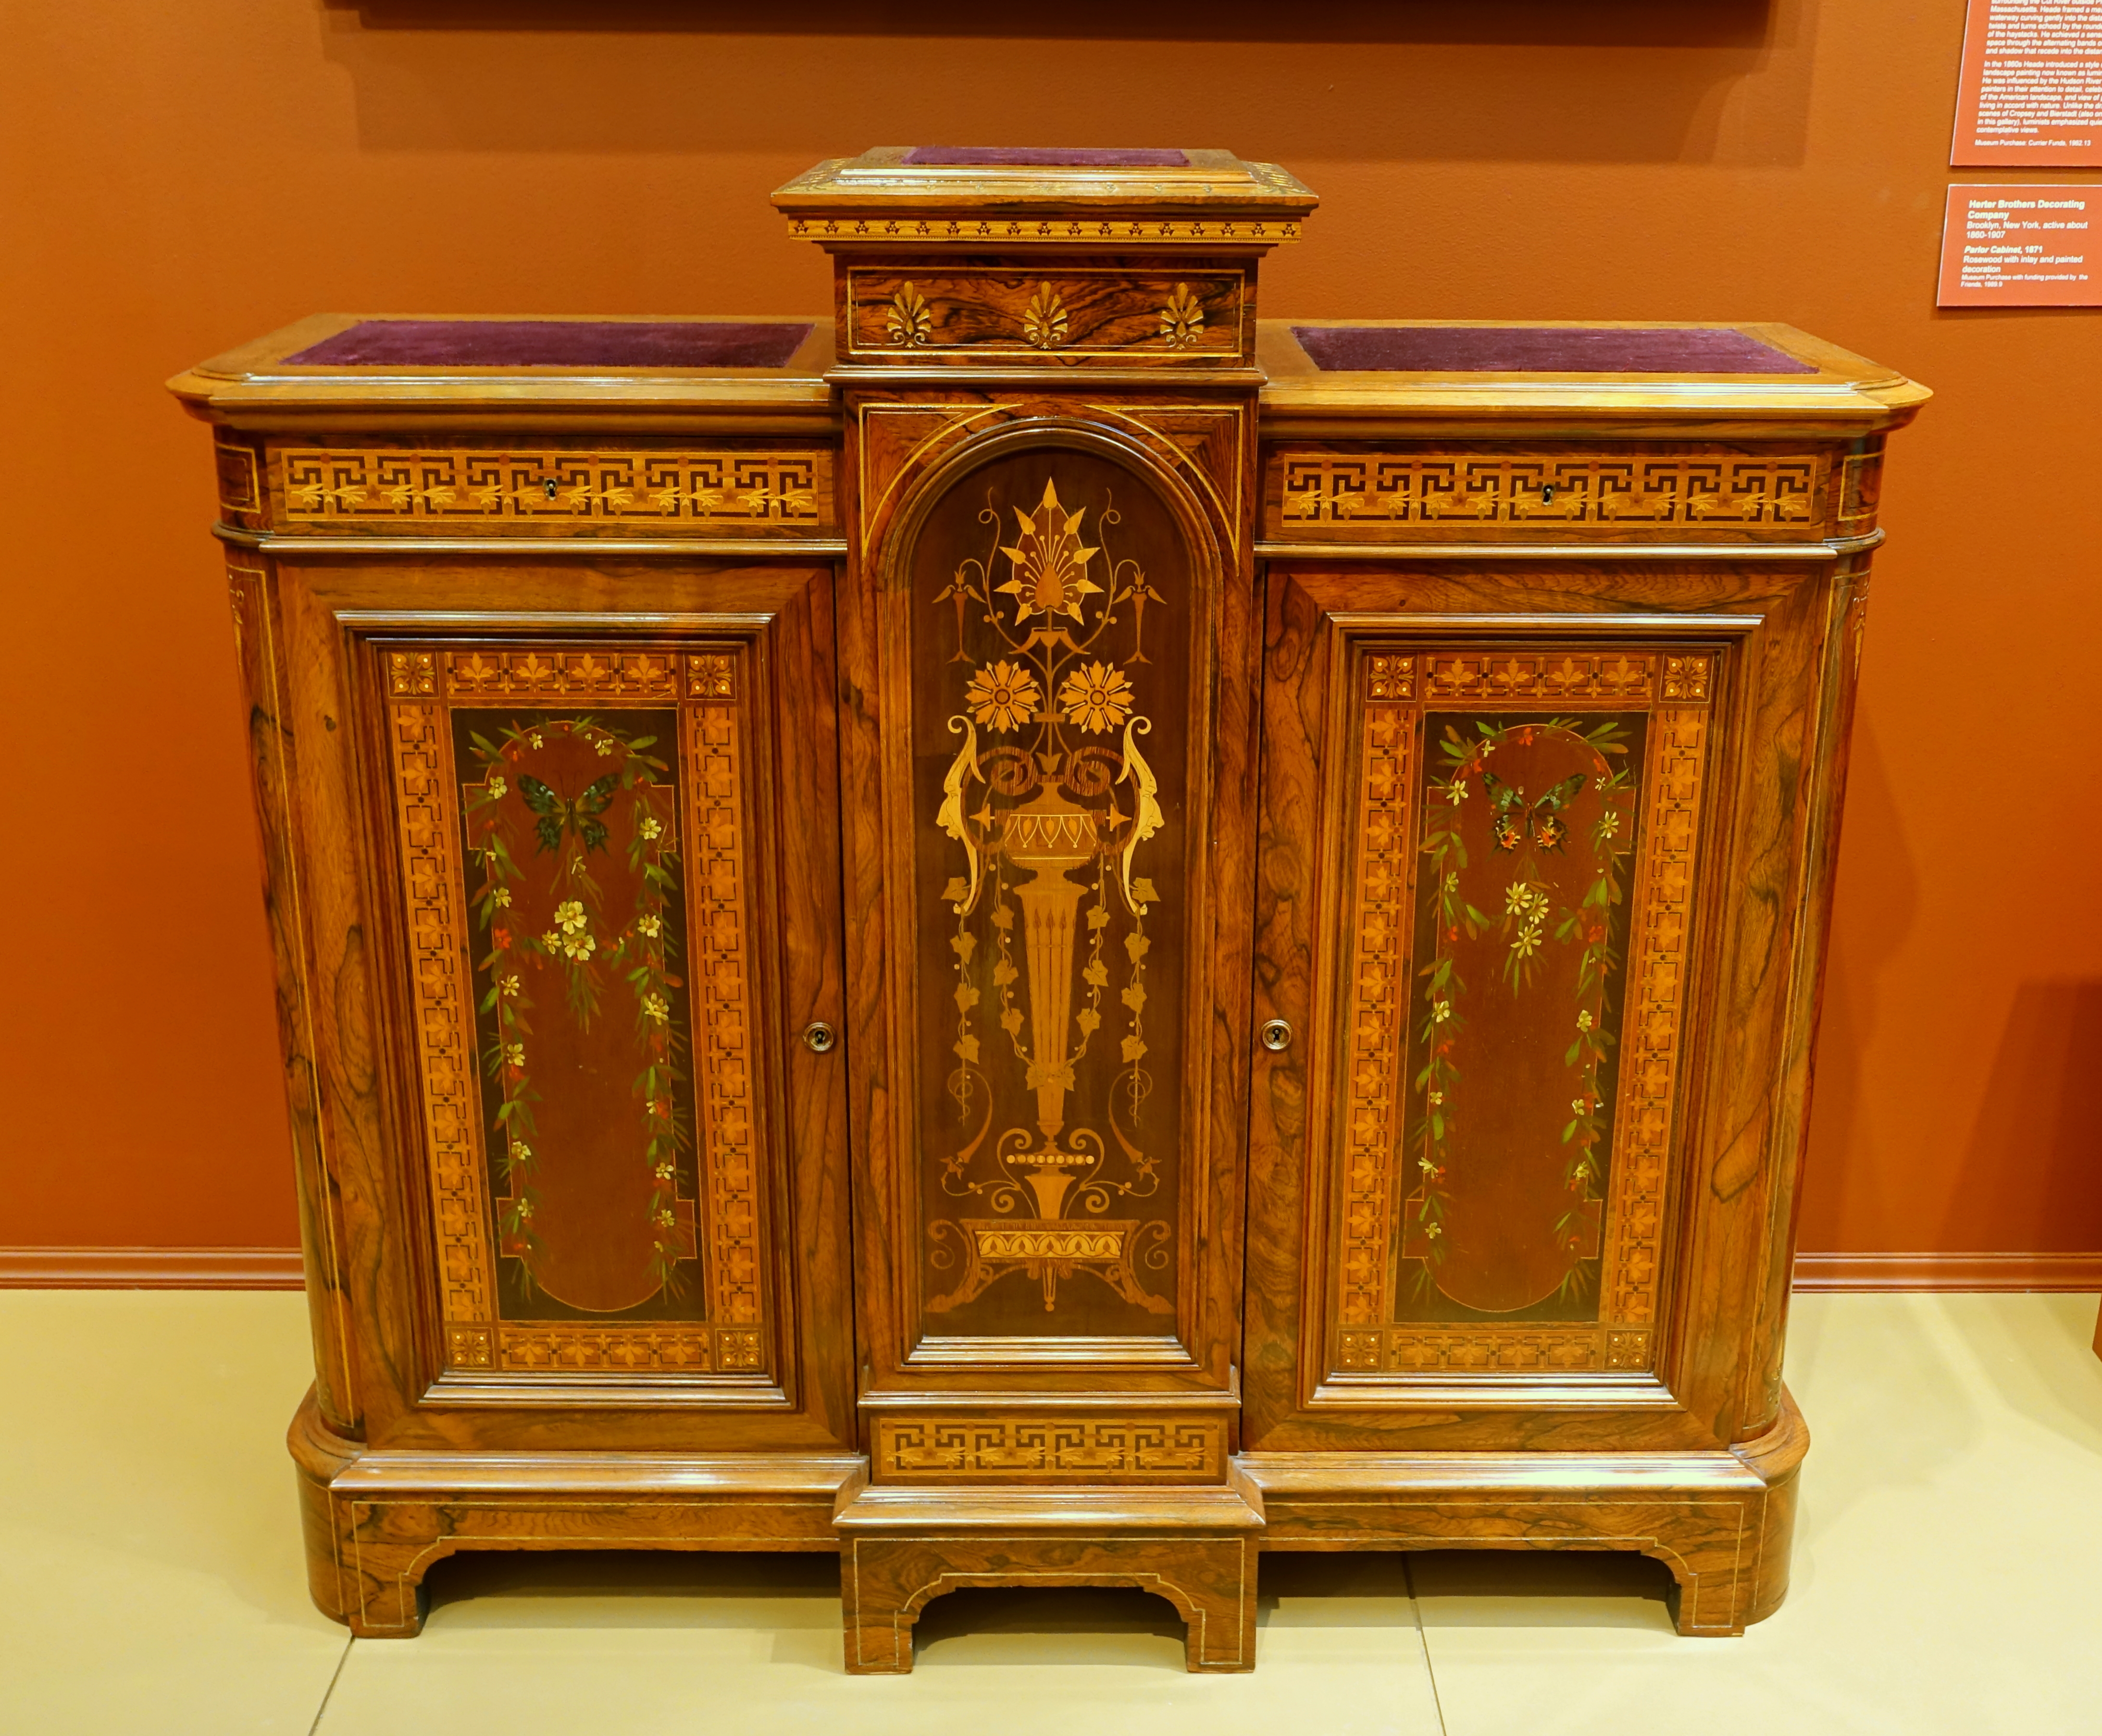 File:Parlor Cabinet, Herter Brothers Decorating Company, 1871, Rosewood  With Inlay And